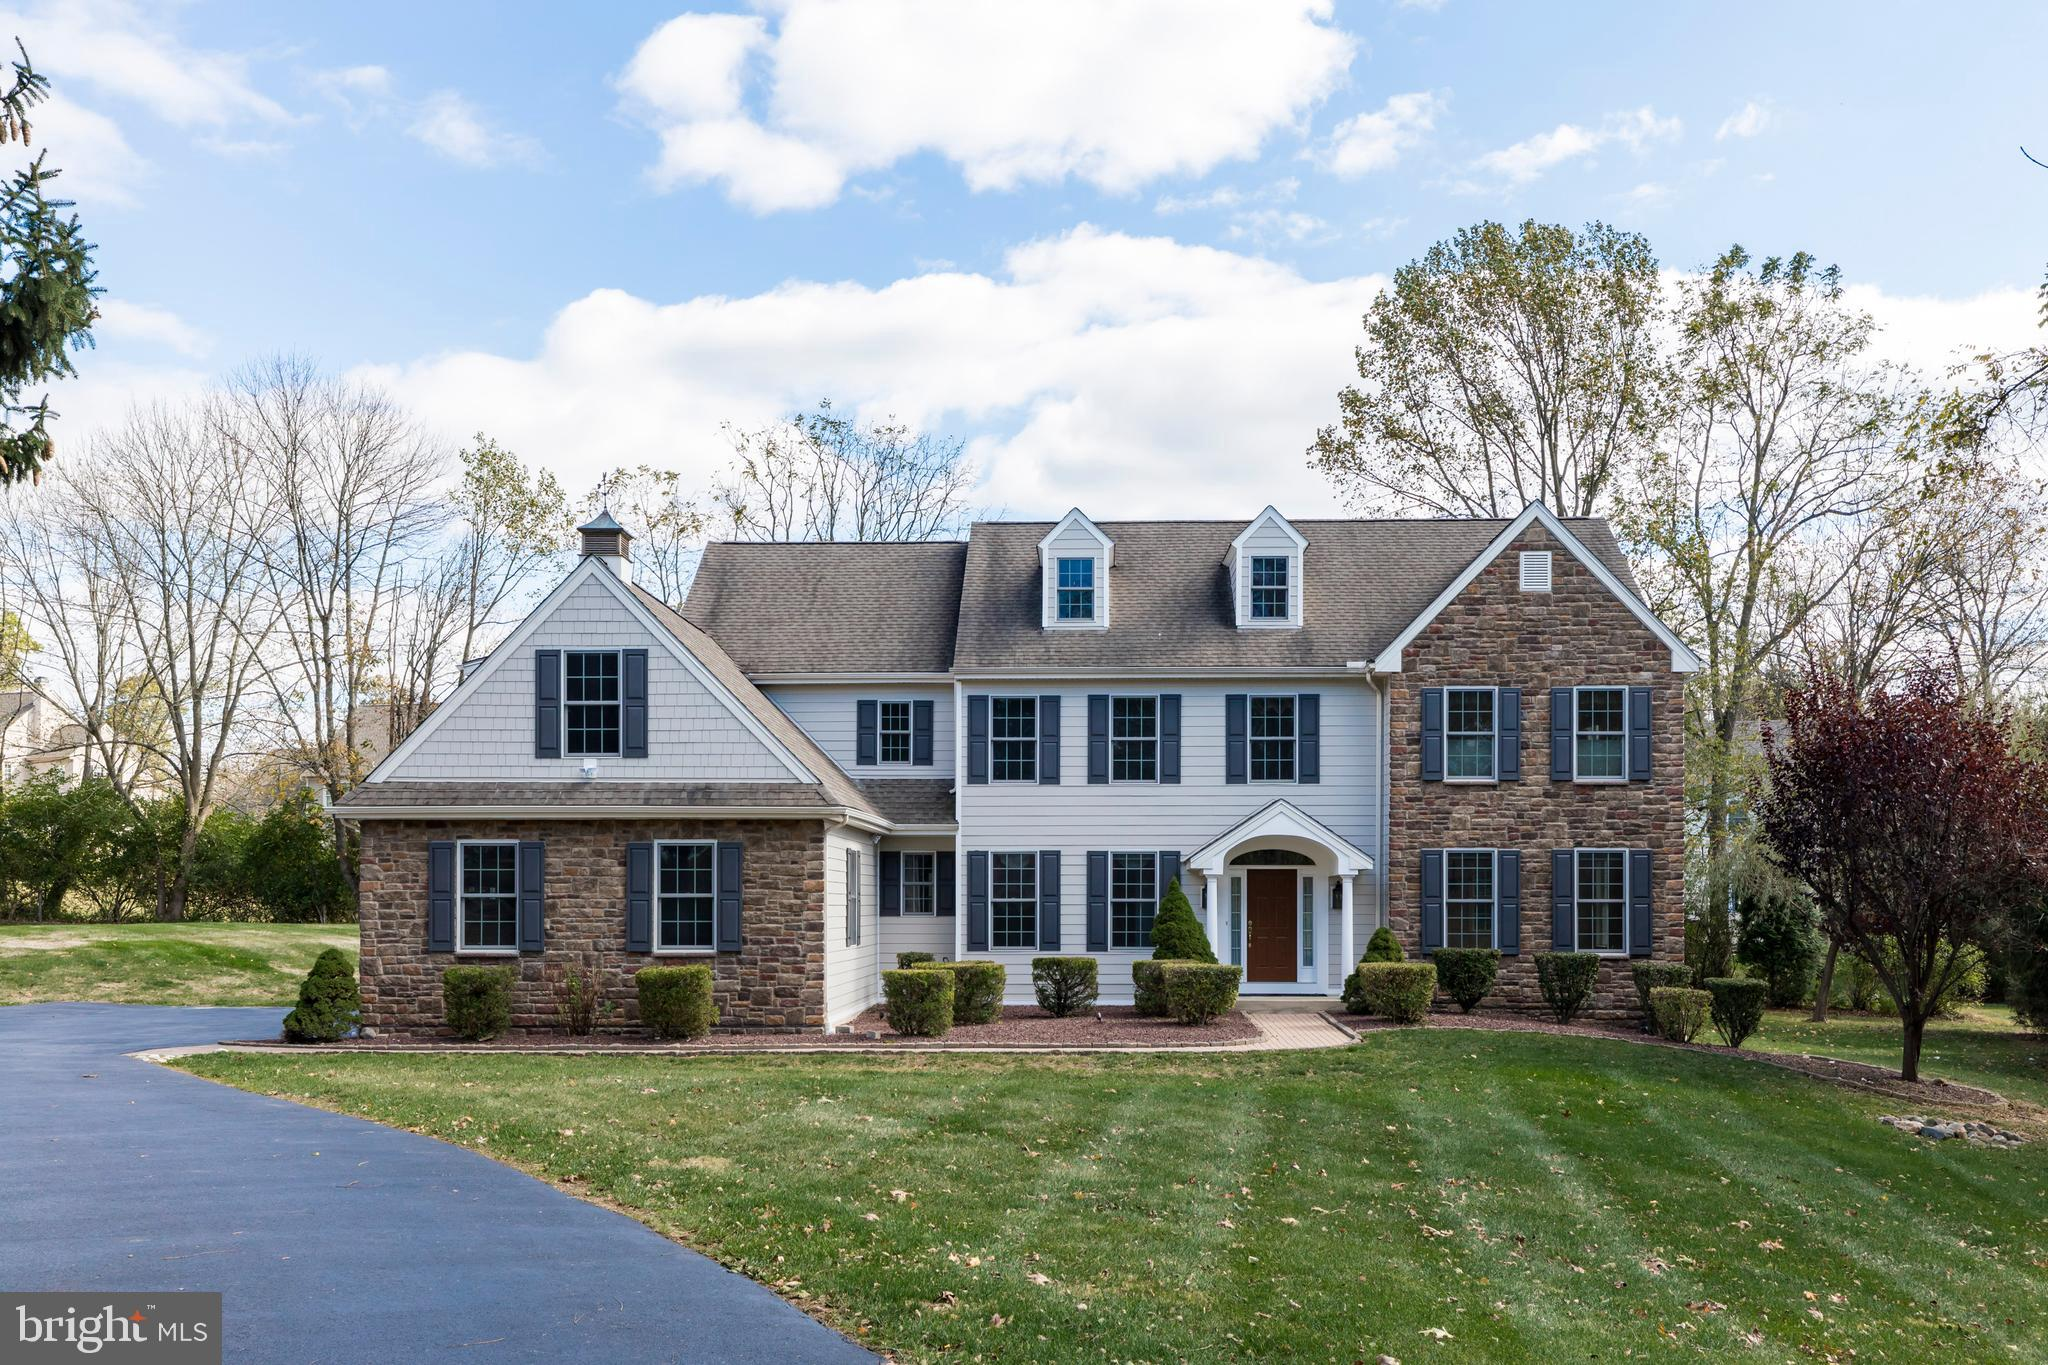 1658 E BOOT ROAD, WEST CHESTER, PA 19380